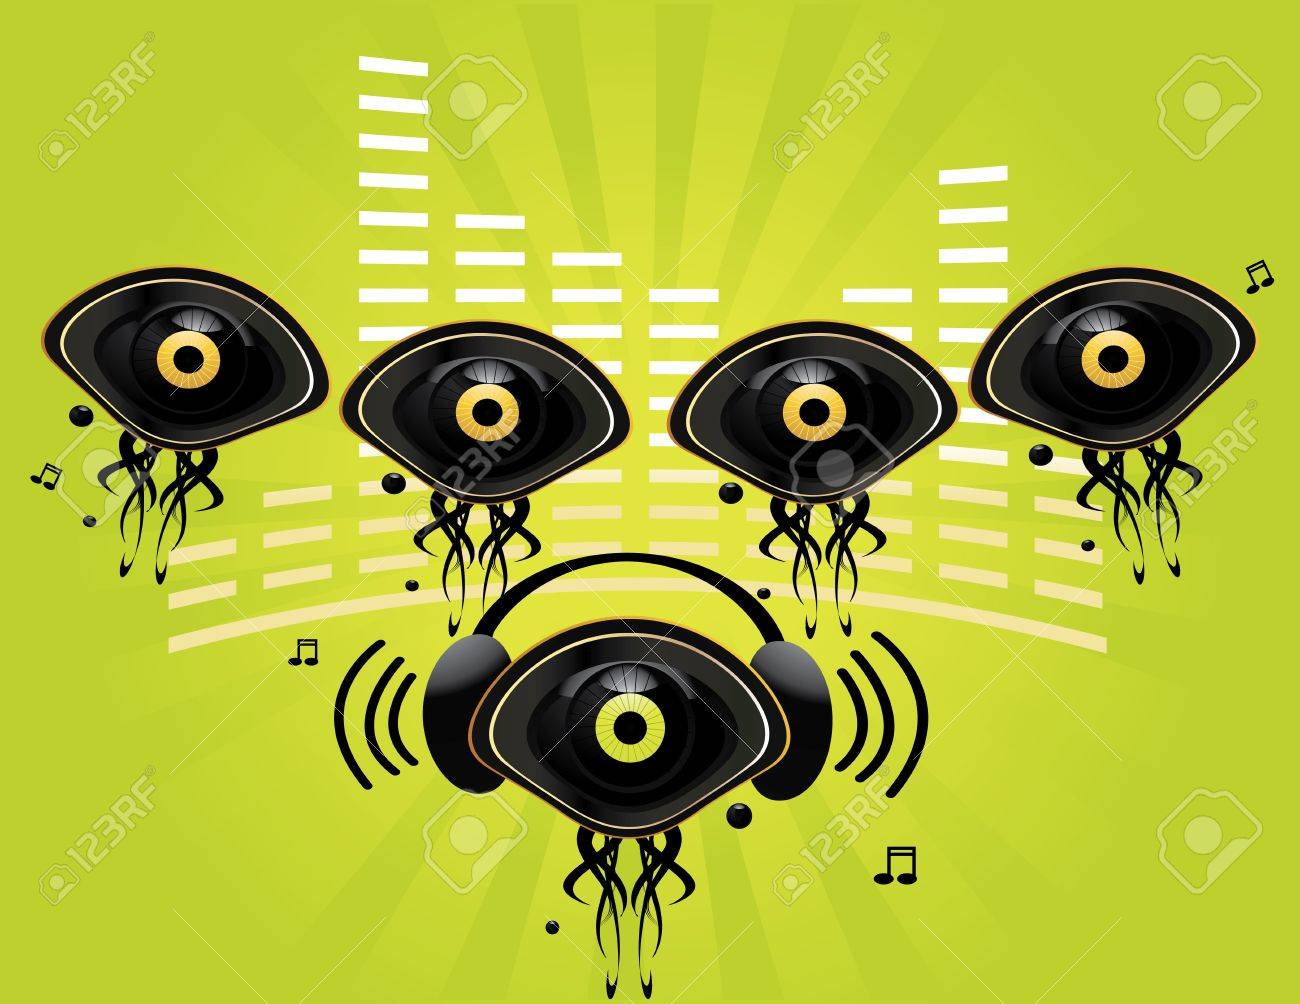 Eye character music group on a green background Stock Photo - 4226016